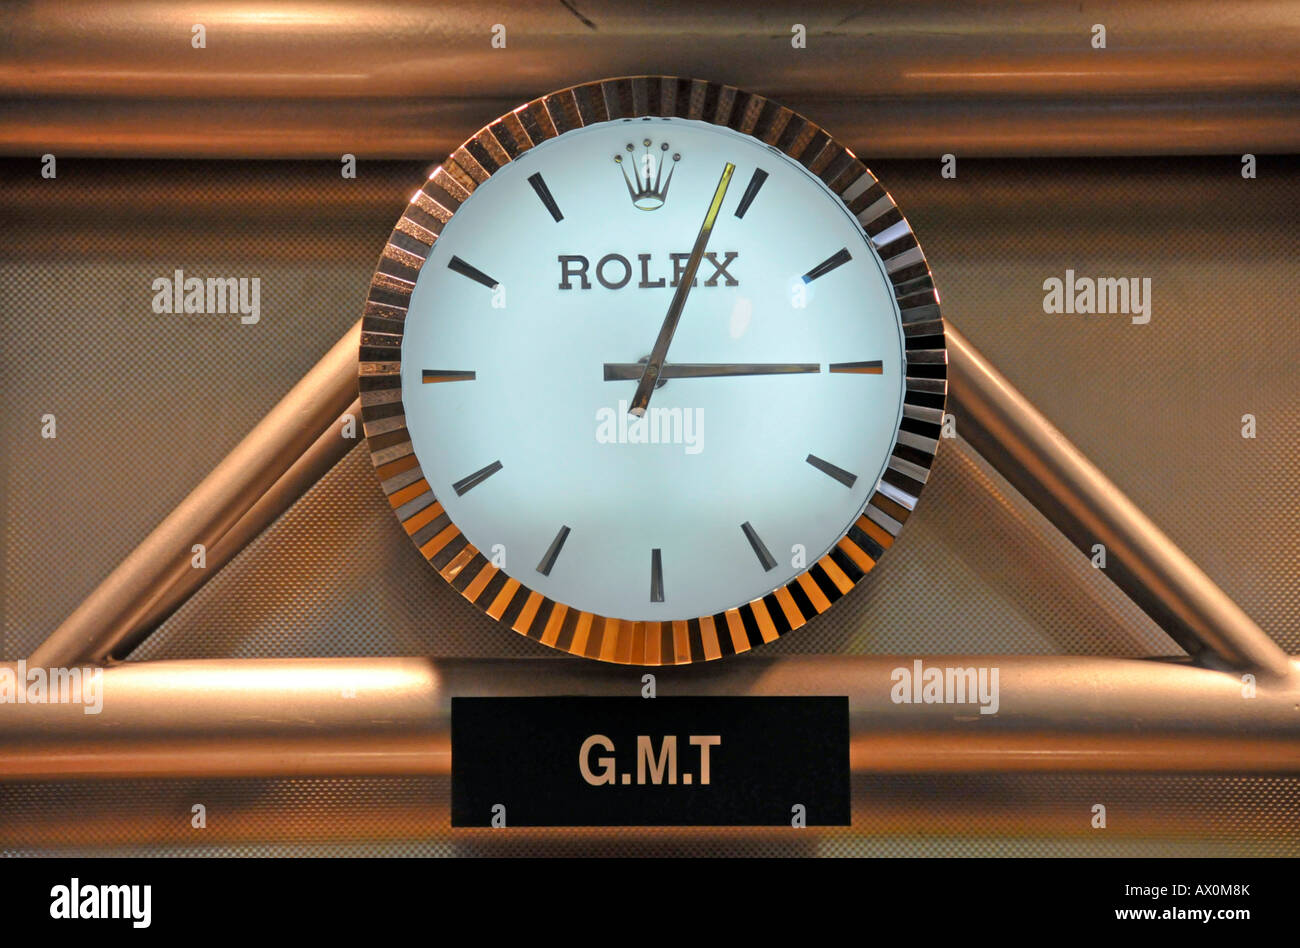 Rolex clock, Sheikh Rashid Terminal, Dubai International Airport, Dubai, United Arab Emirates, Asia Stock Photo